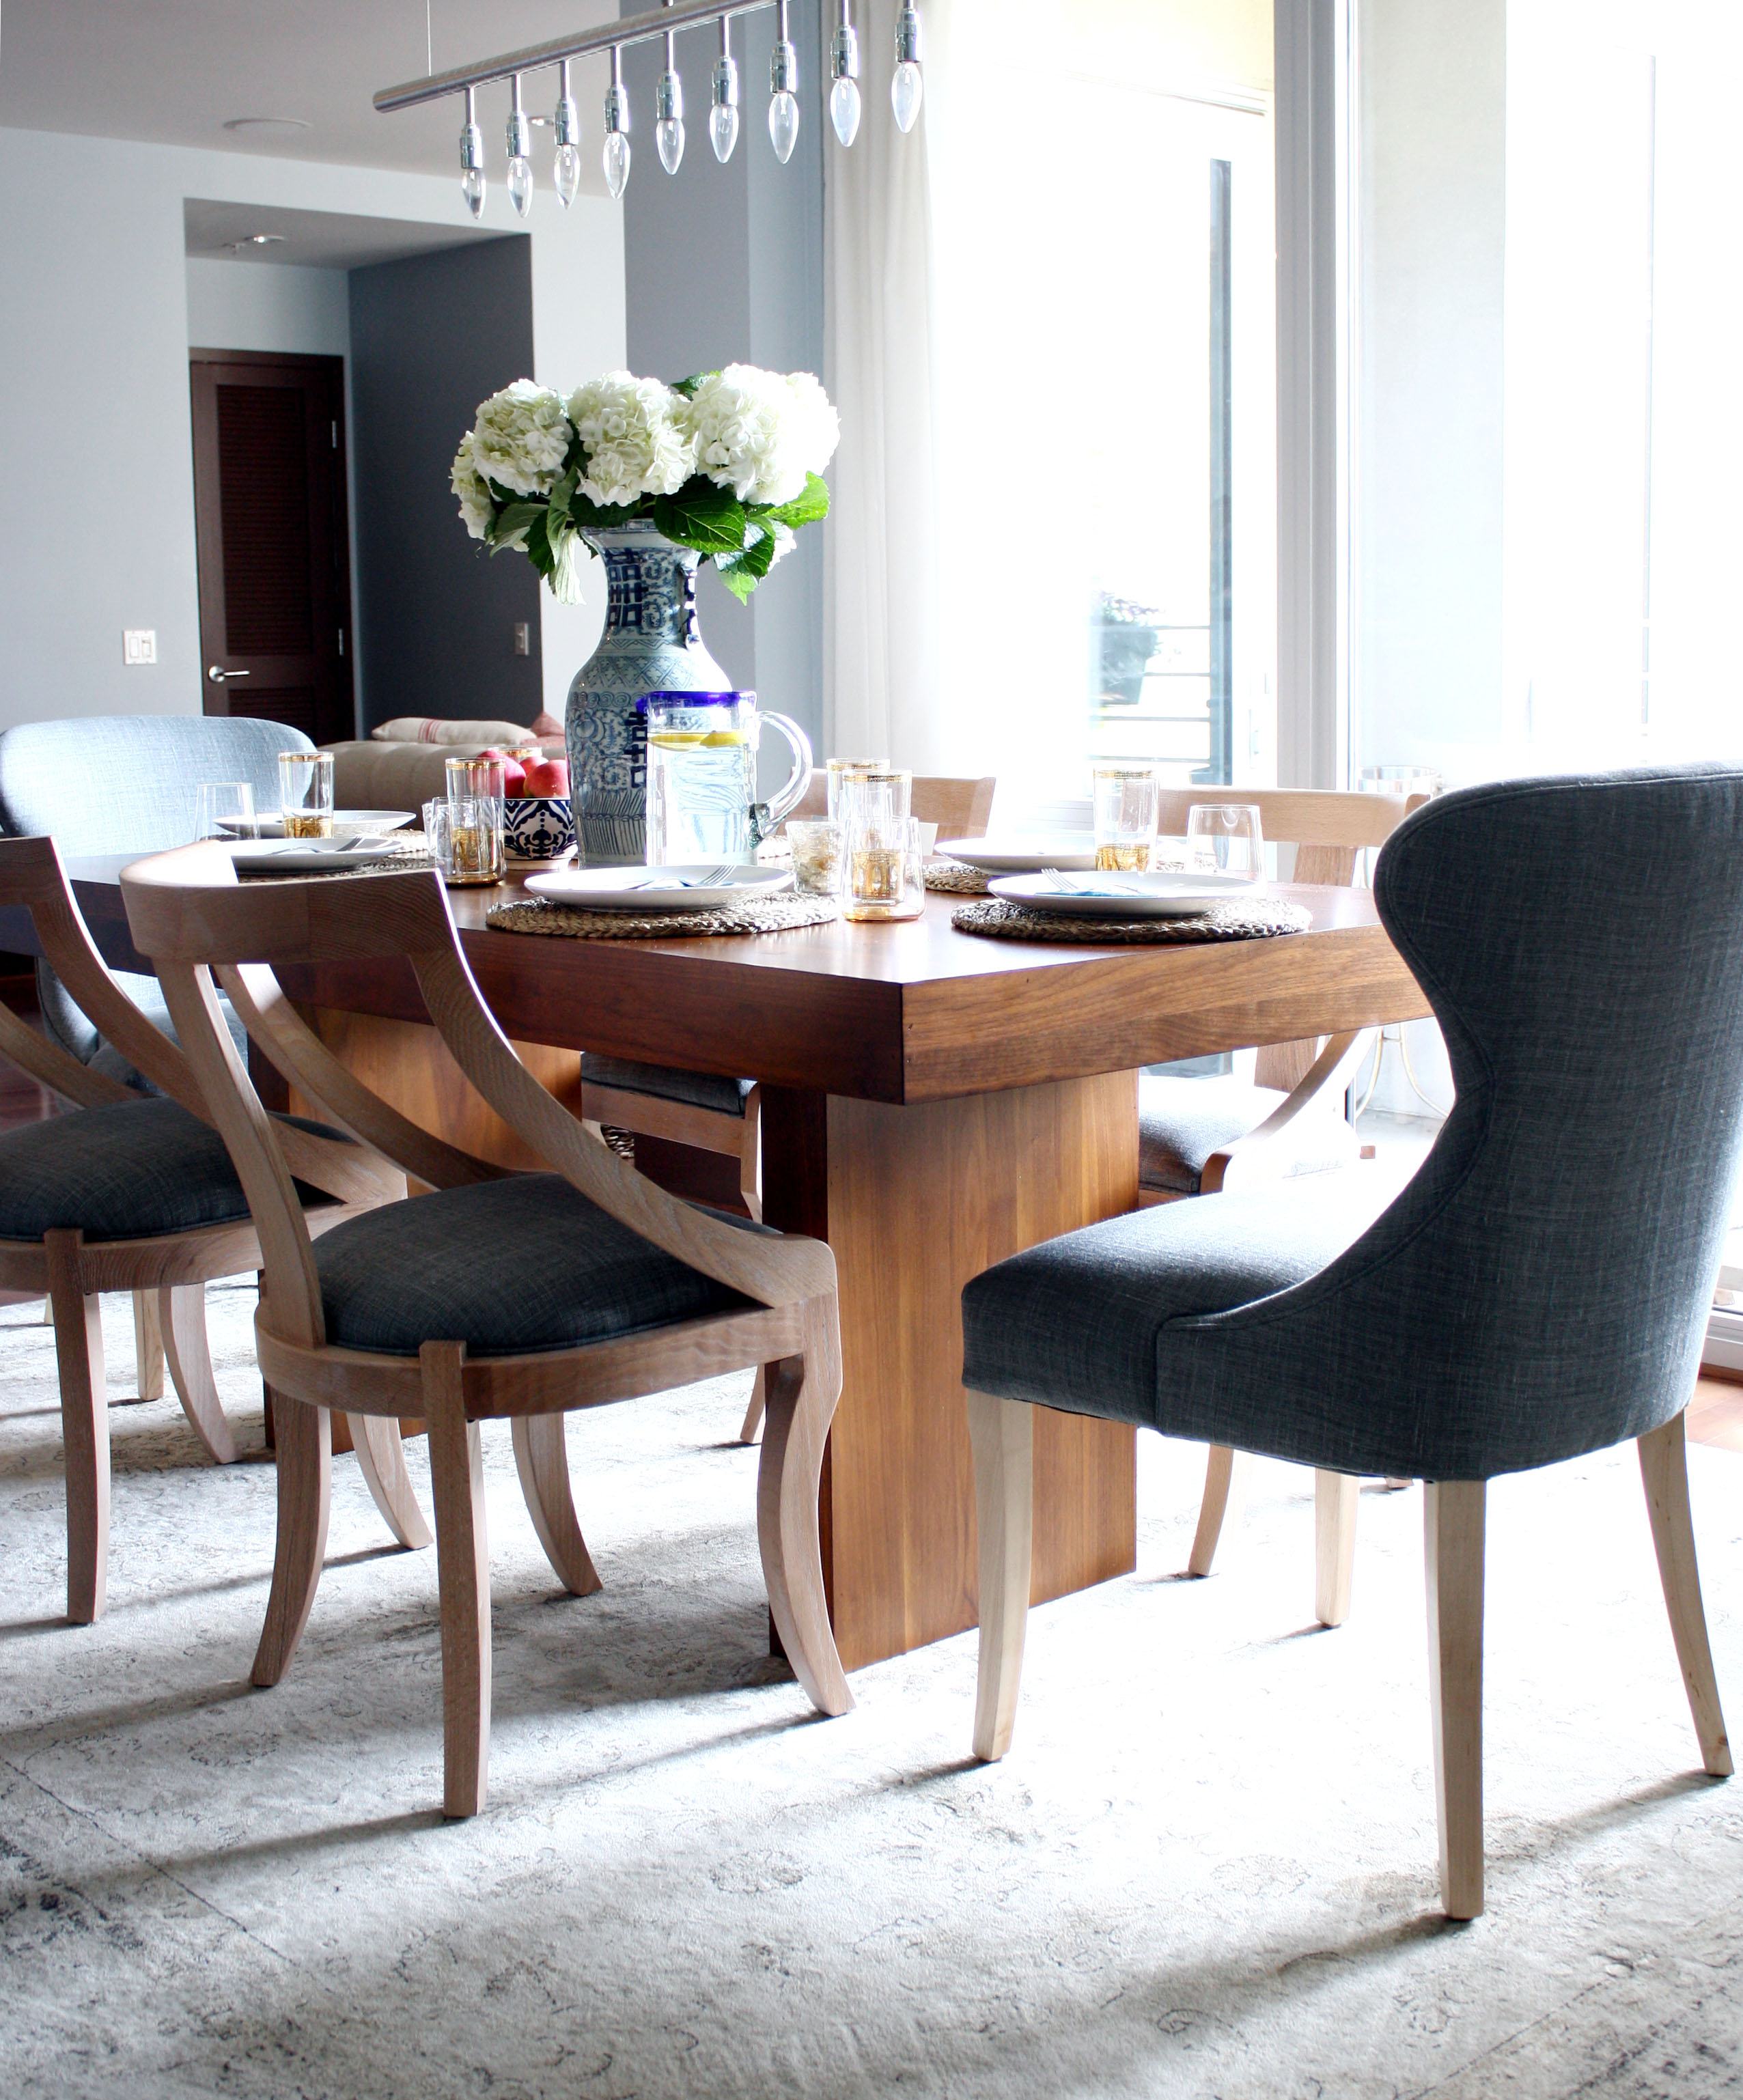 Latest Dining Chairs: Apartment Update: Our New Dining Chairs!